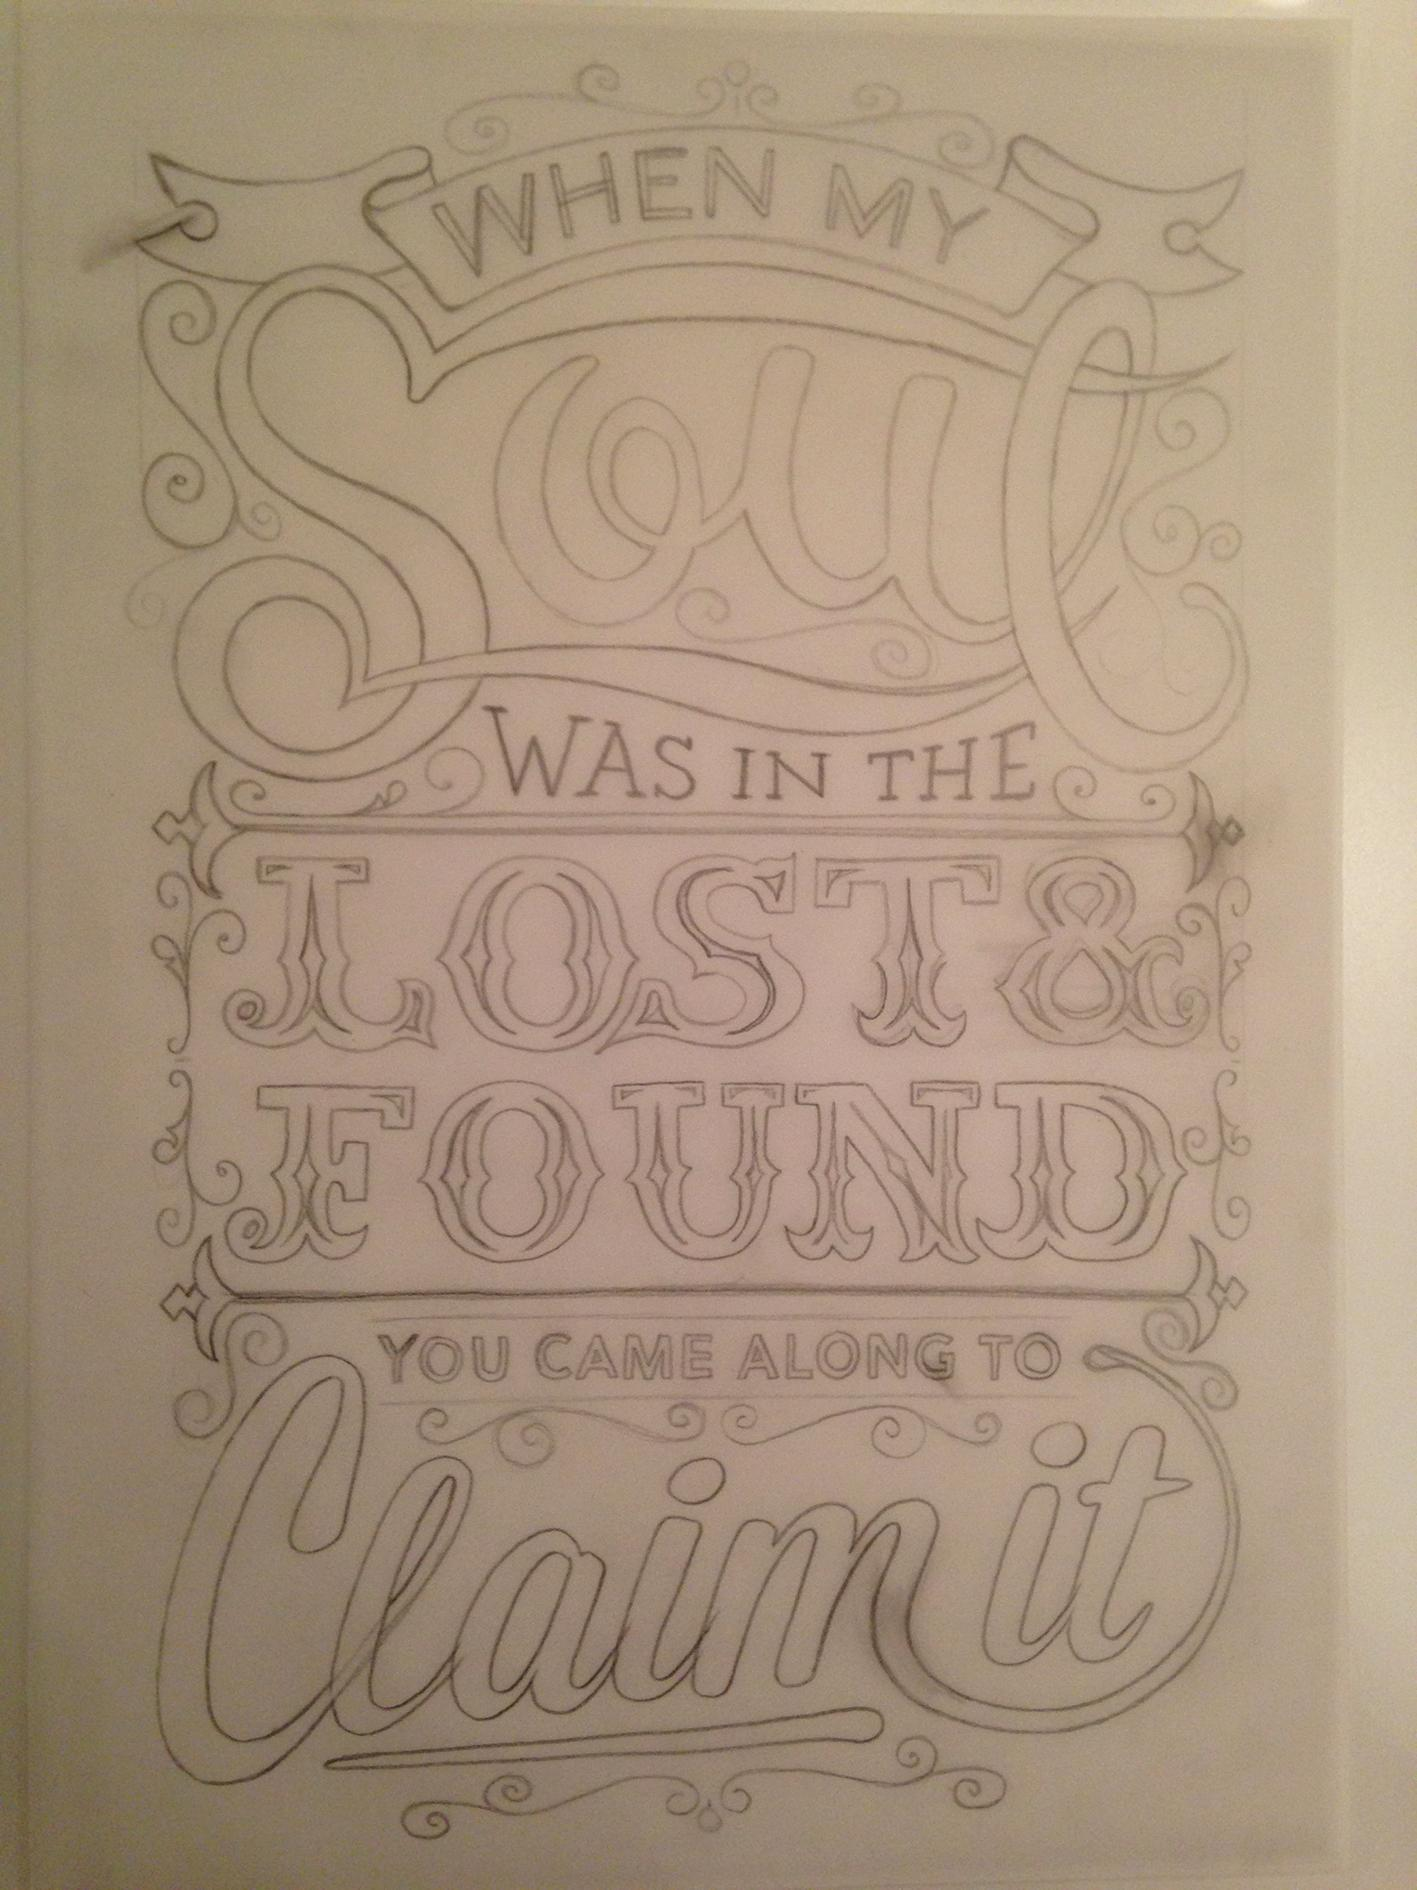 When my soul was in the lost and found... - image 10 - student project